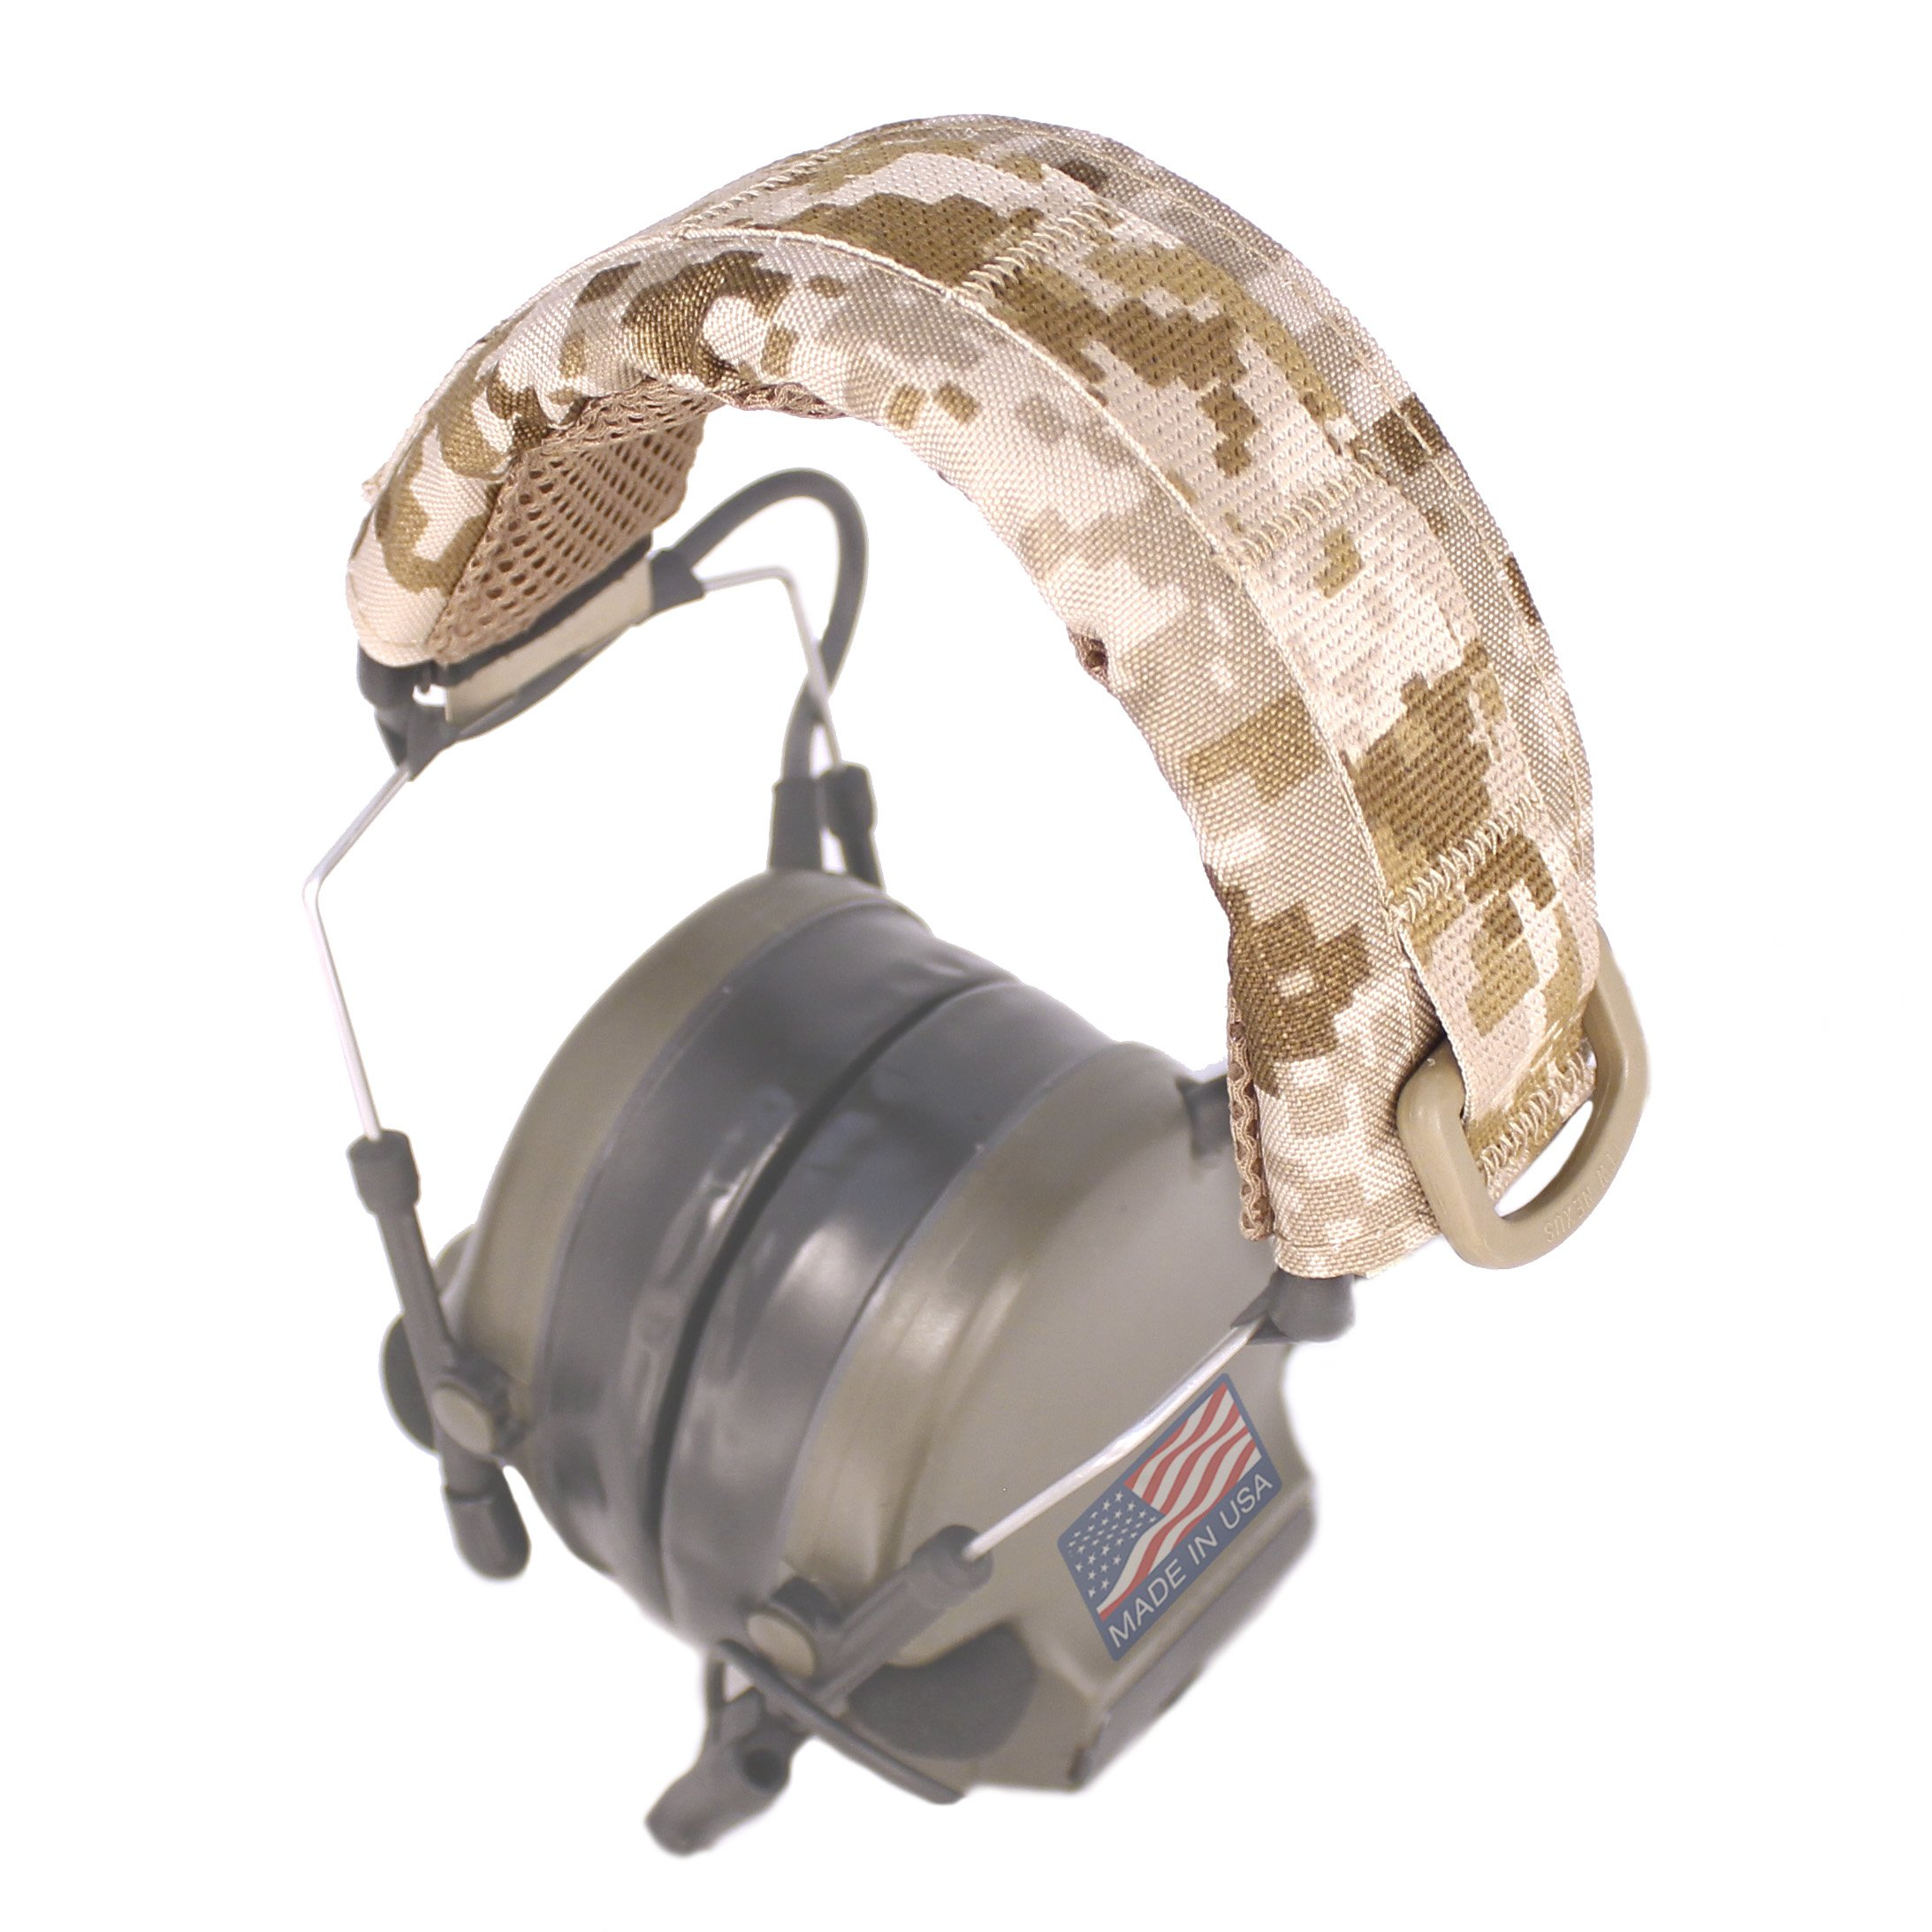 U.S. Tactical Sewing USTS Advanced Modular Headset Cover (Digital Desert) by U.S. Tactical Sewing